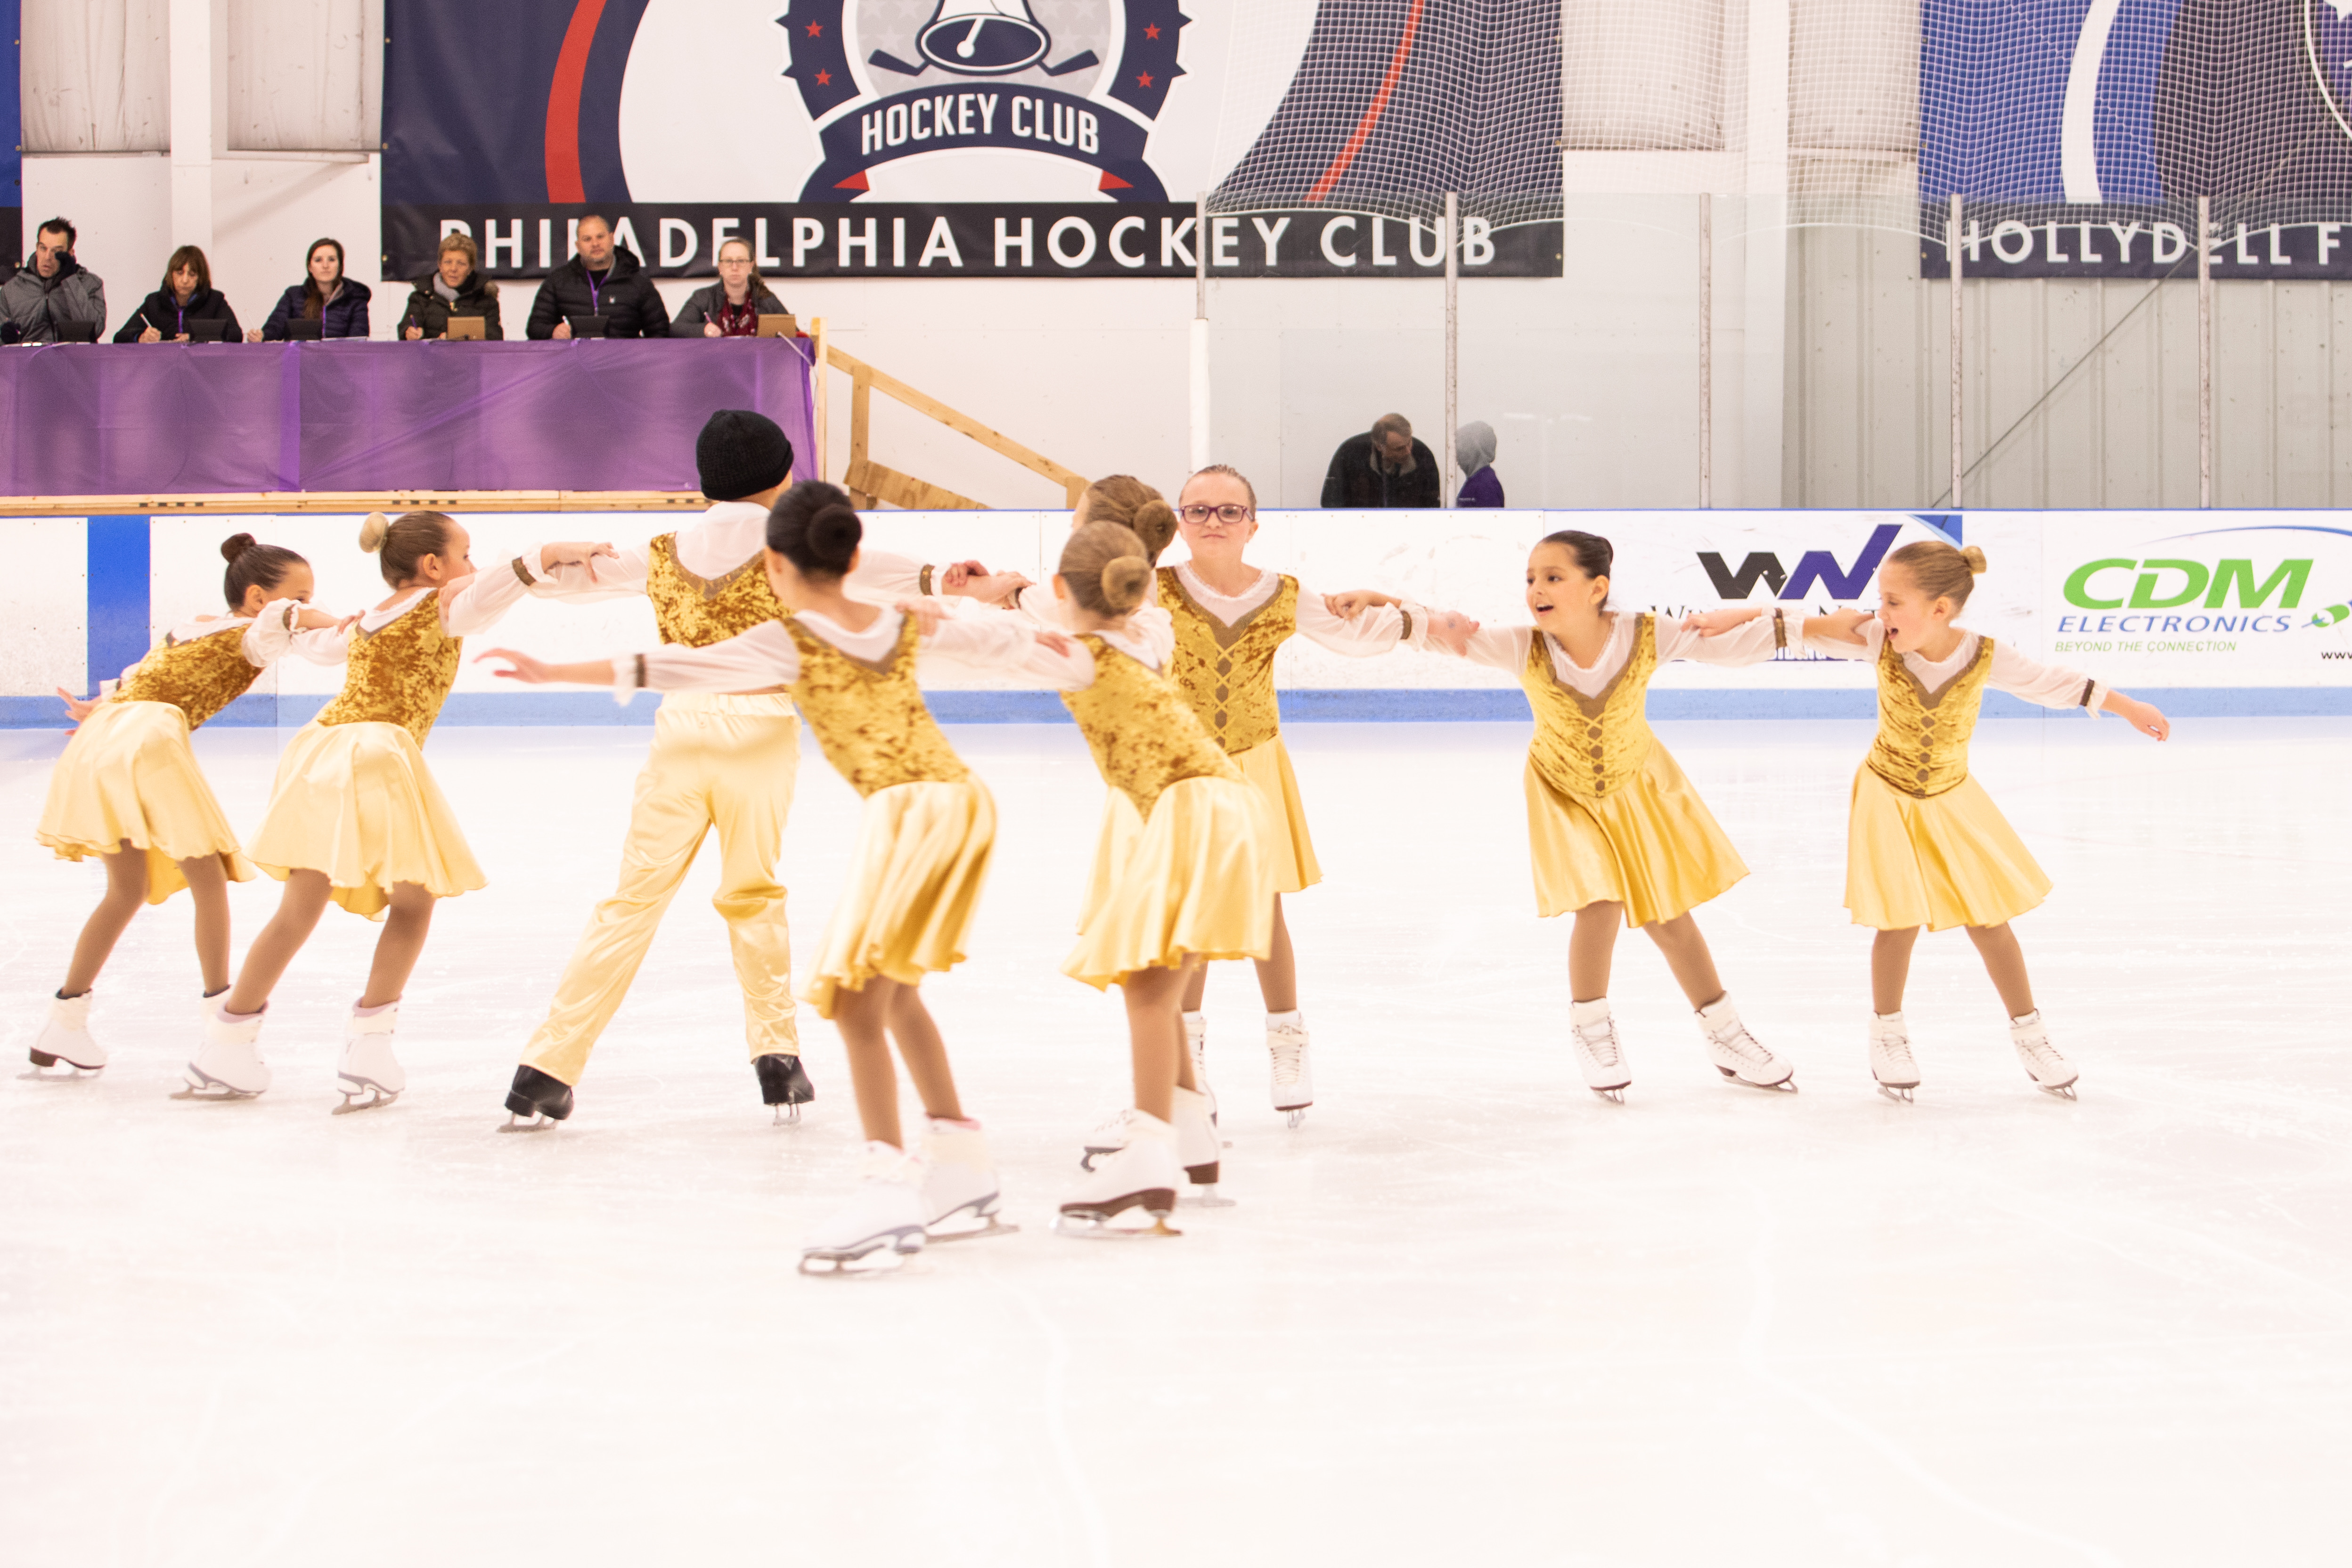 Nine skaters making a Y formation.